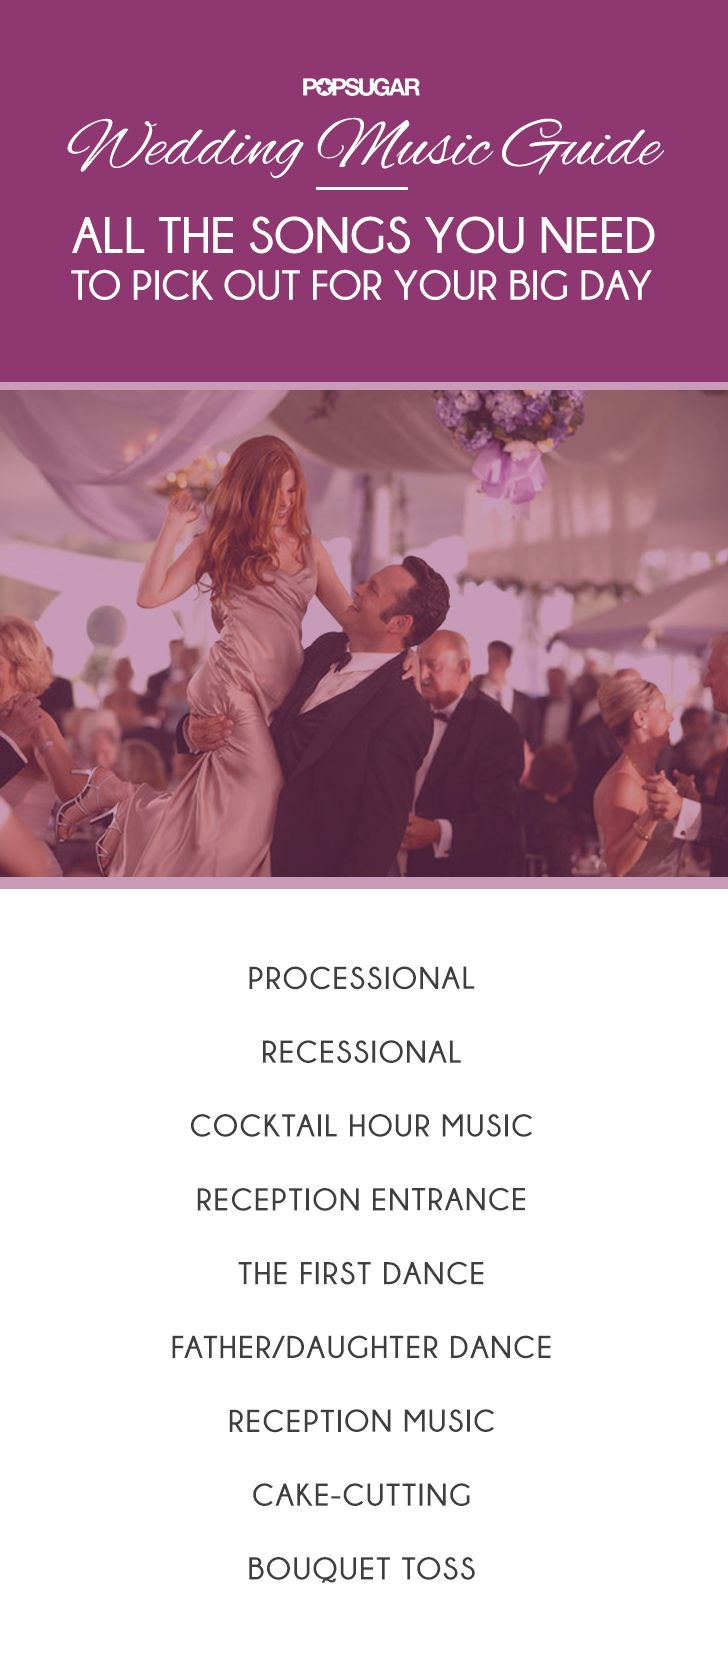 A Guide To Picking Out The Songs For Your Wedding Wedding Music